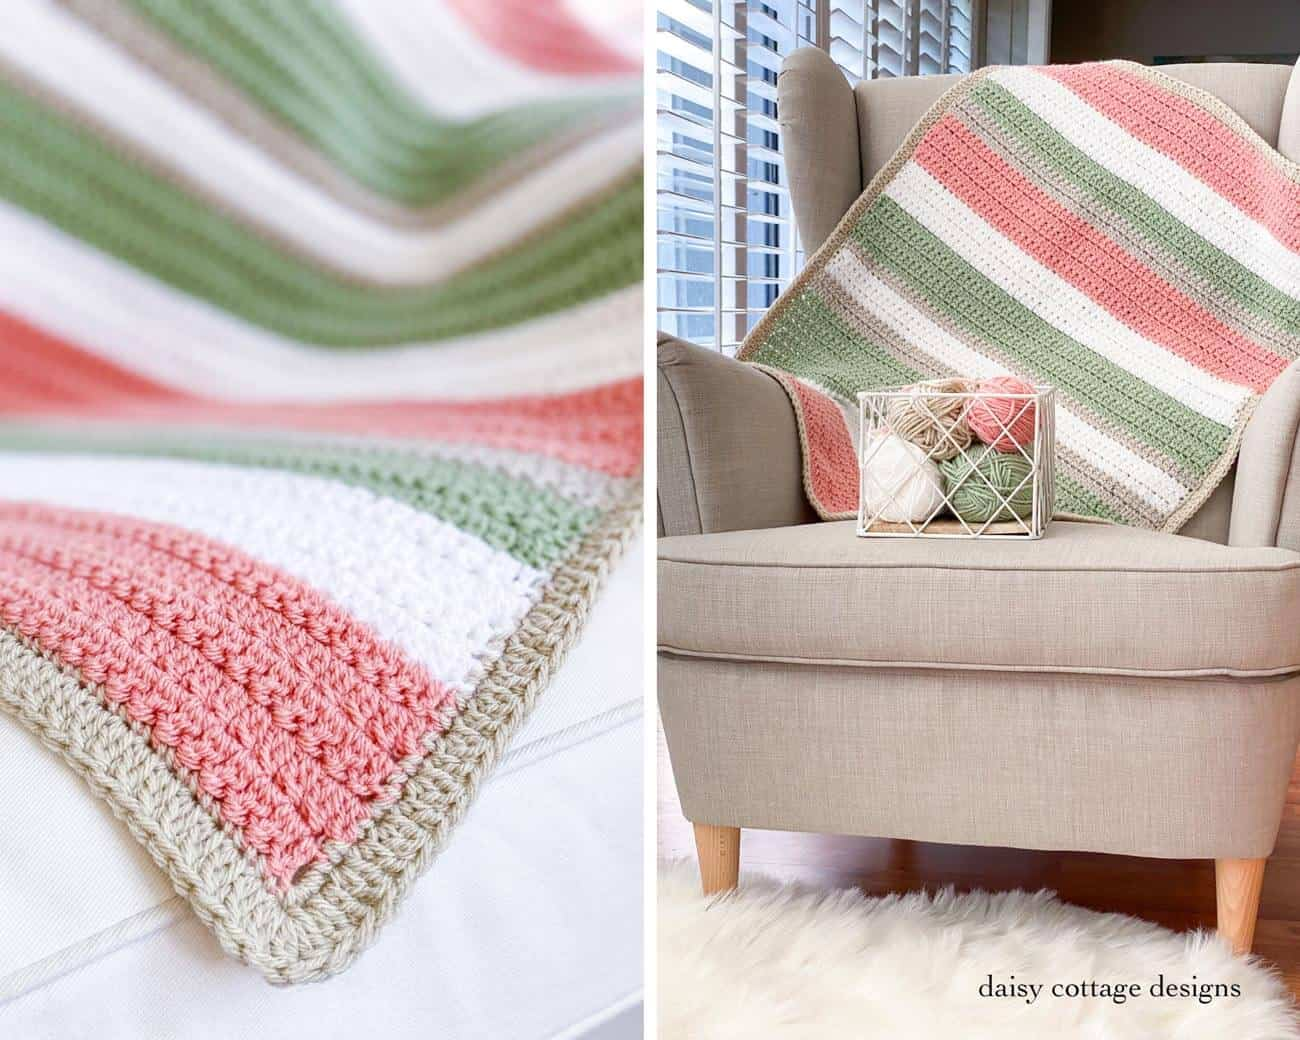 Use this quick and easy crochet pattern to create a beautiful stripe crochet blanket. Make it in any size and give it as a wonderful crochet gift. A great crochet blanket tutorial!